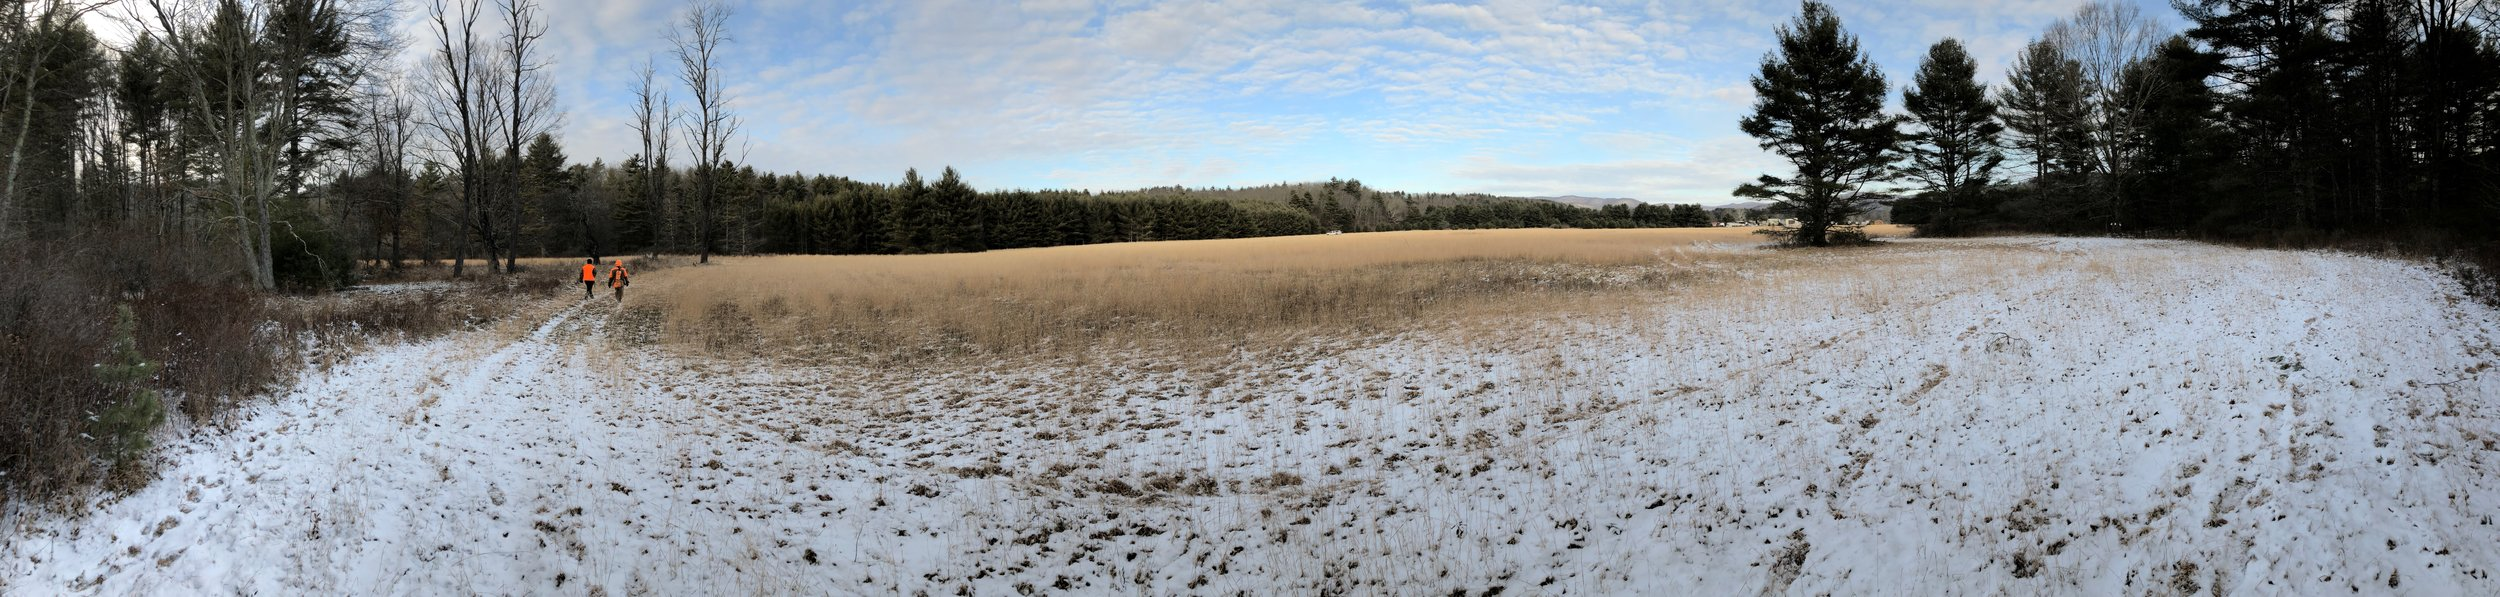 the field at the base of the state forest